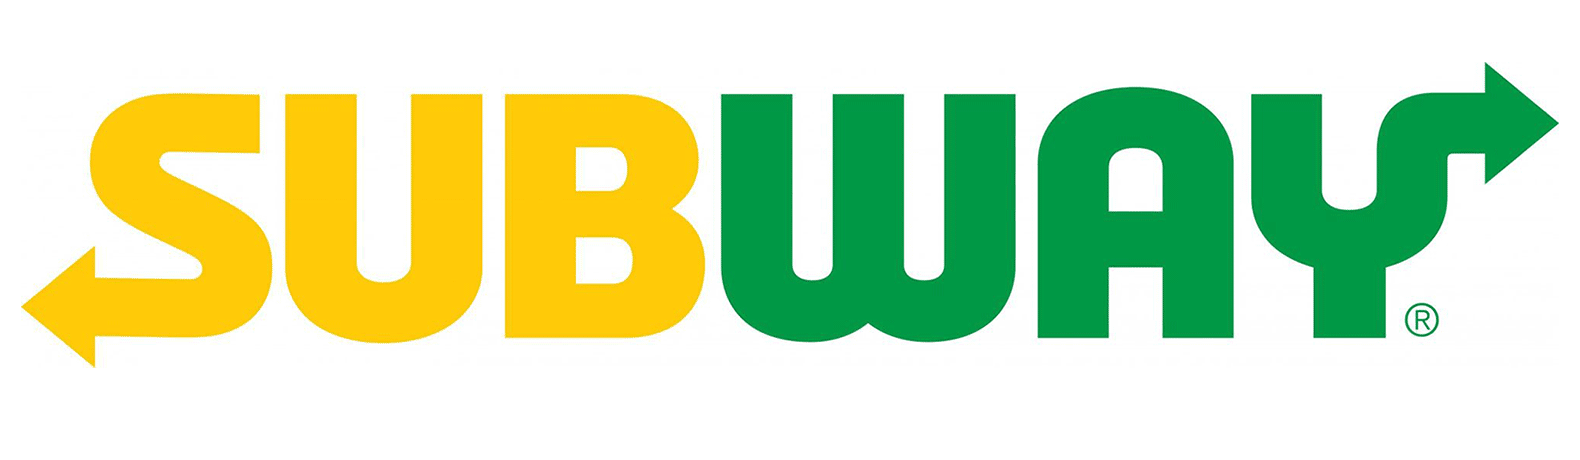 Subway.logo.8.5